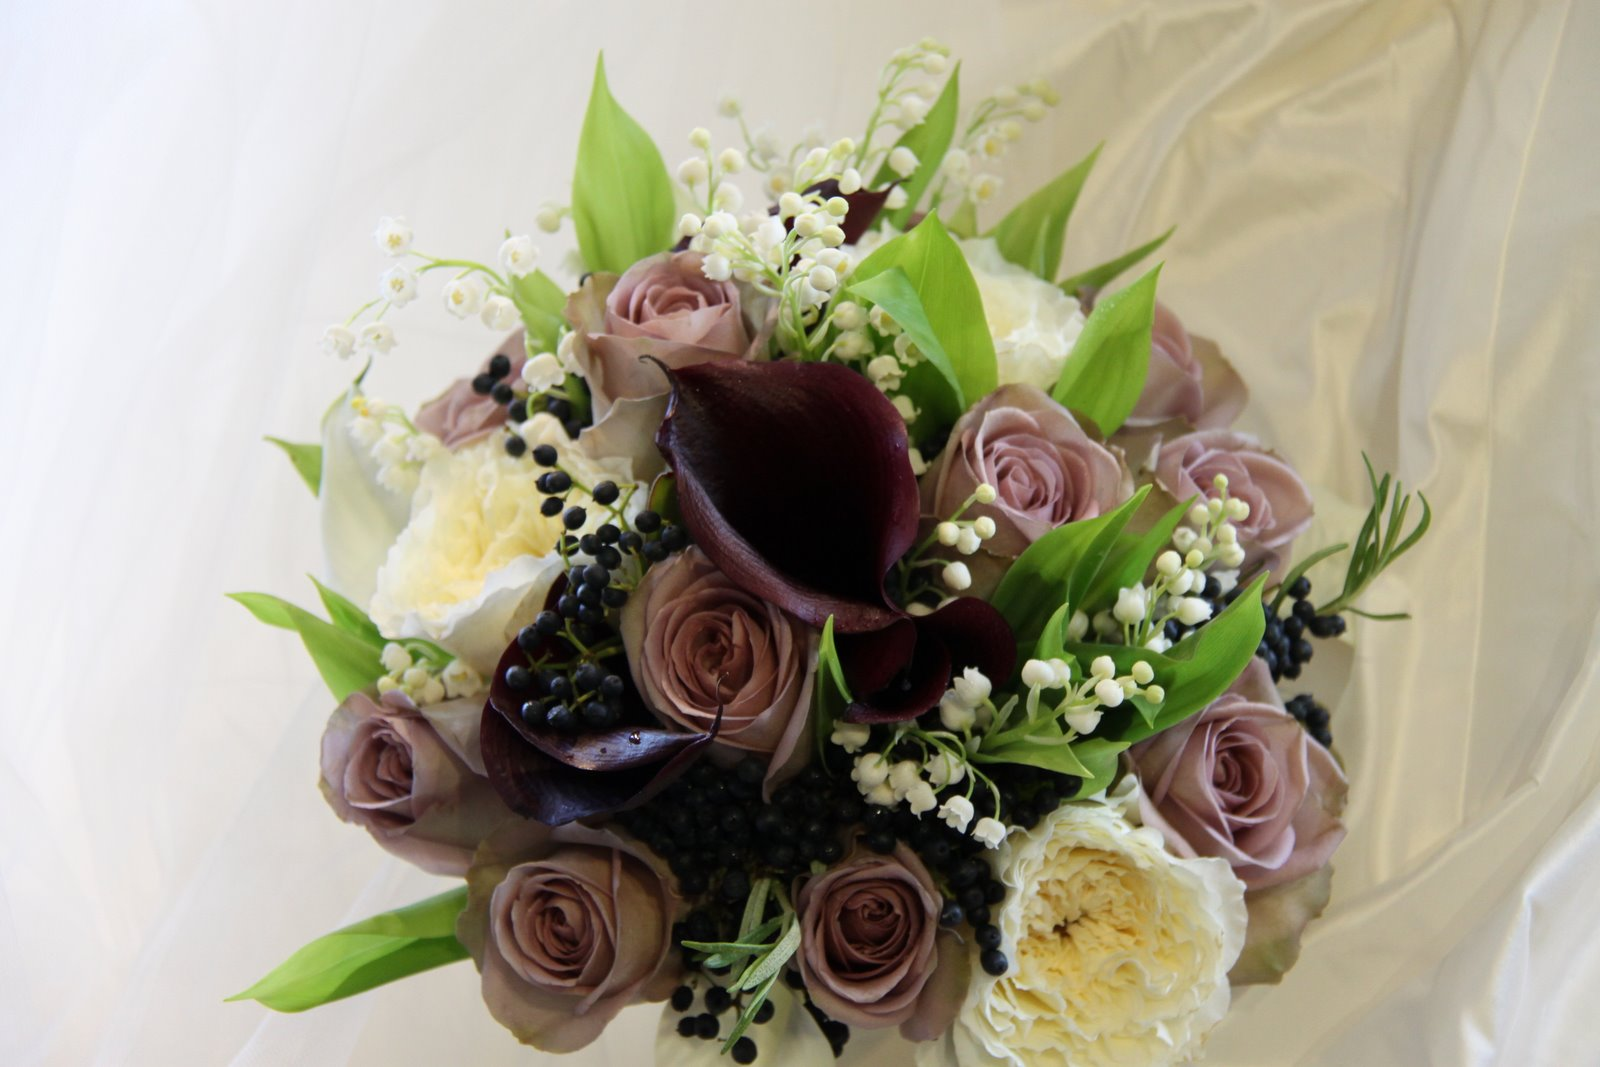 Wedding Flowers Roses And Lilies : The flower magician lily of valley rose calla